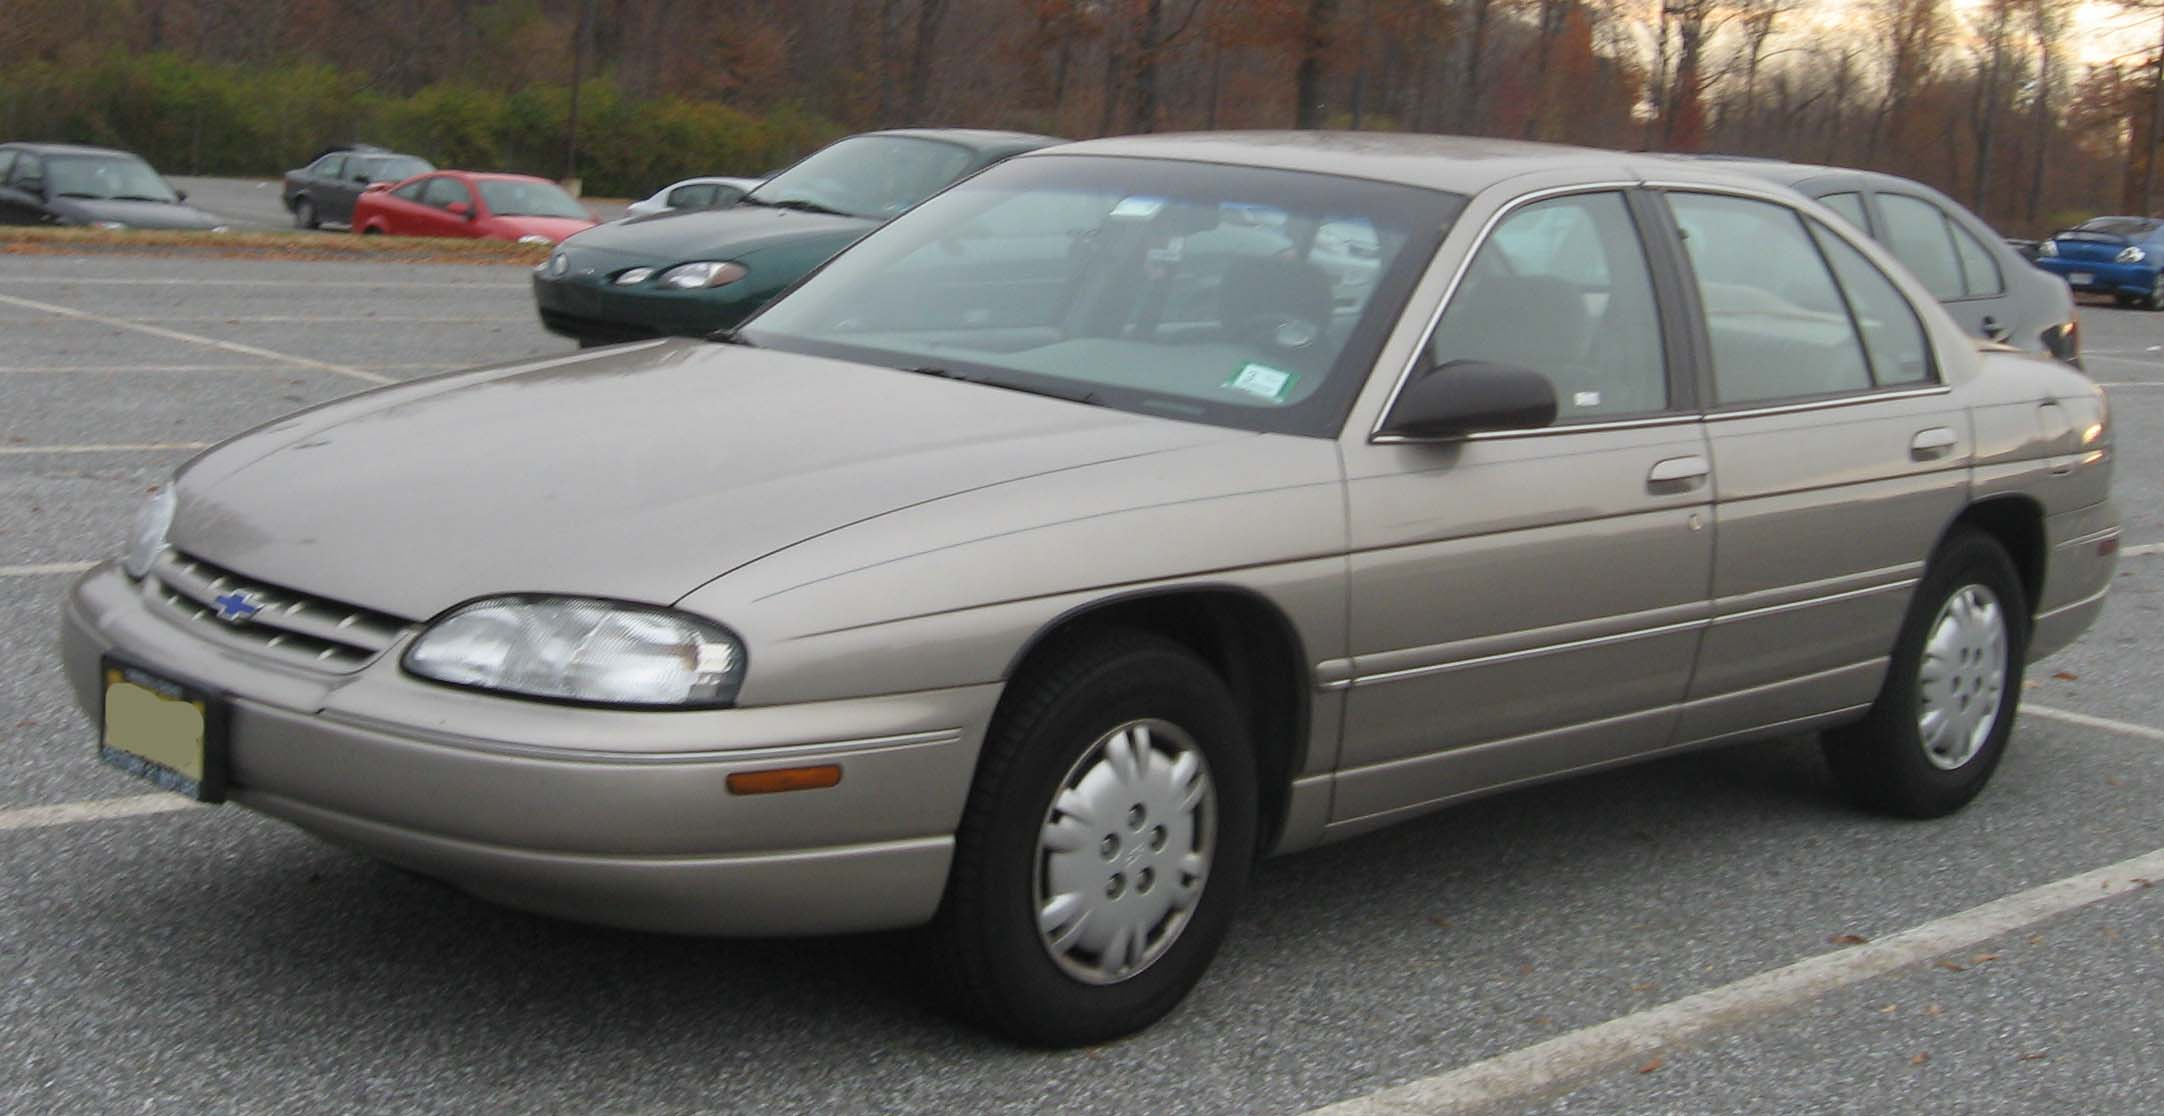 File:2nd-Chevrolet-Lumina.jpg - Wikimedia Commons